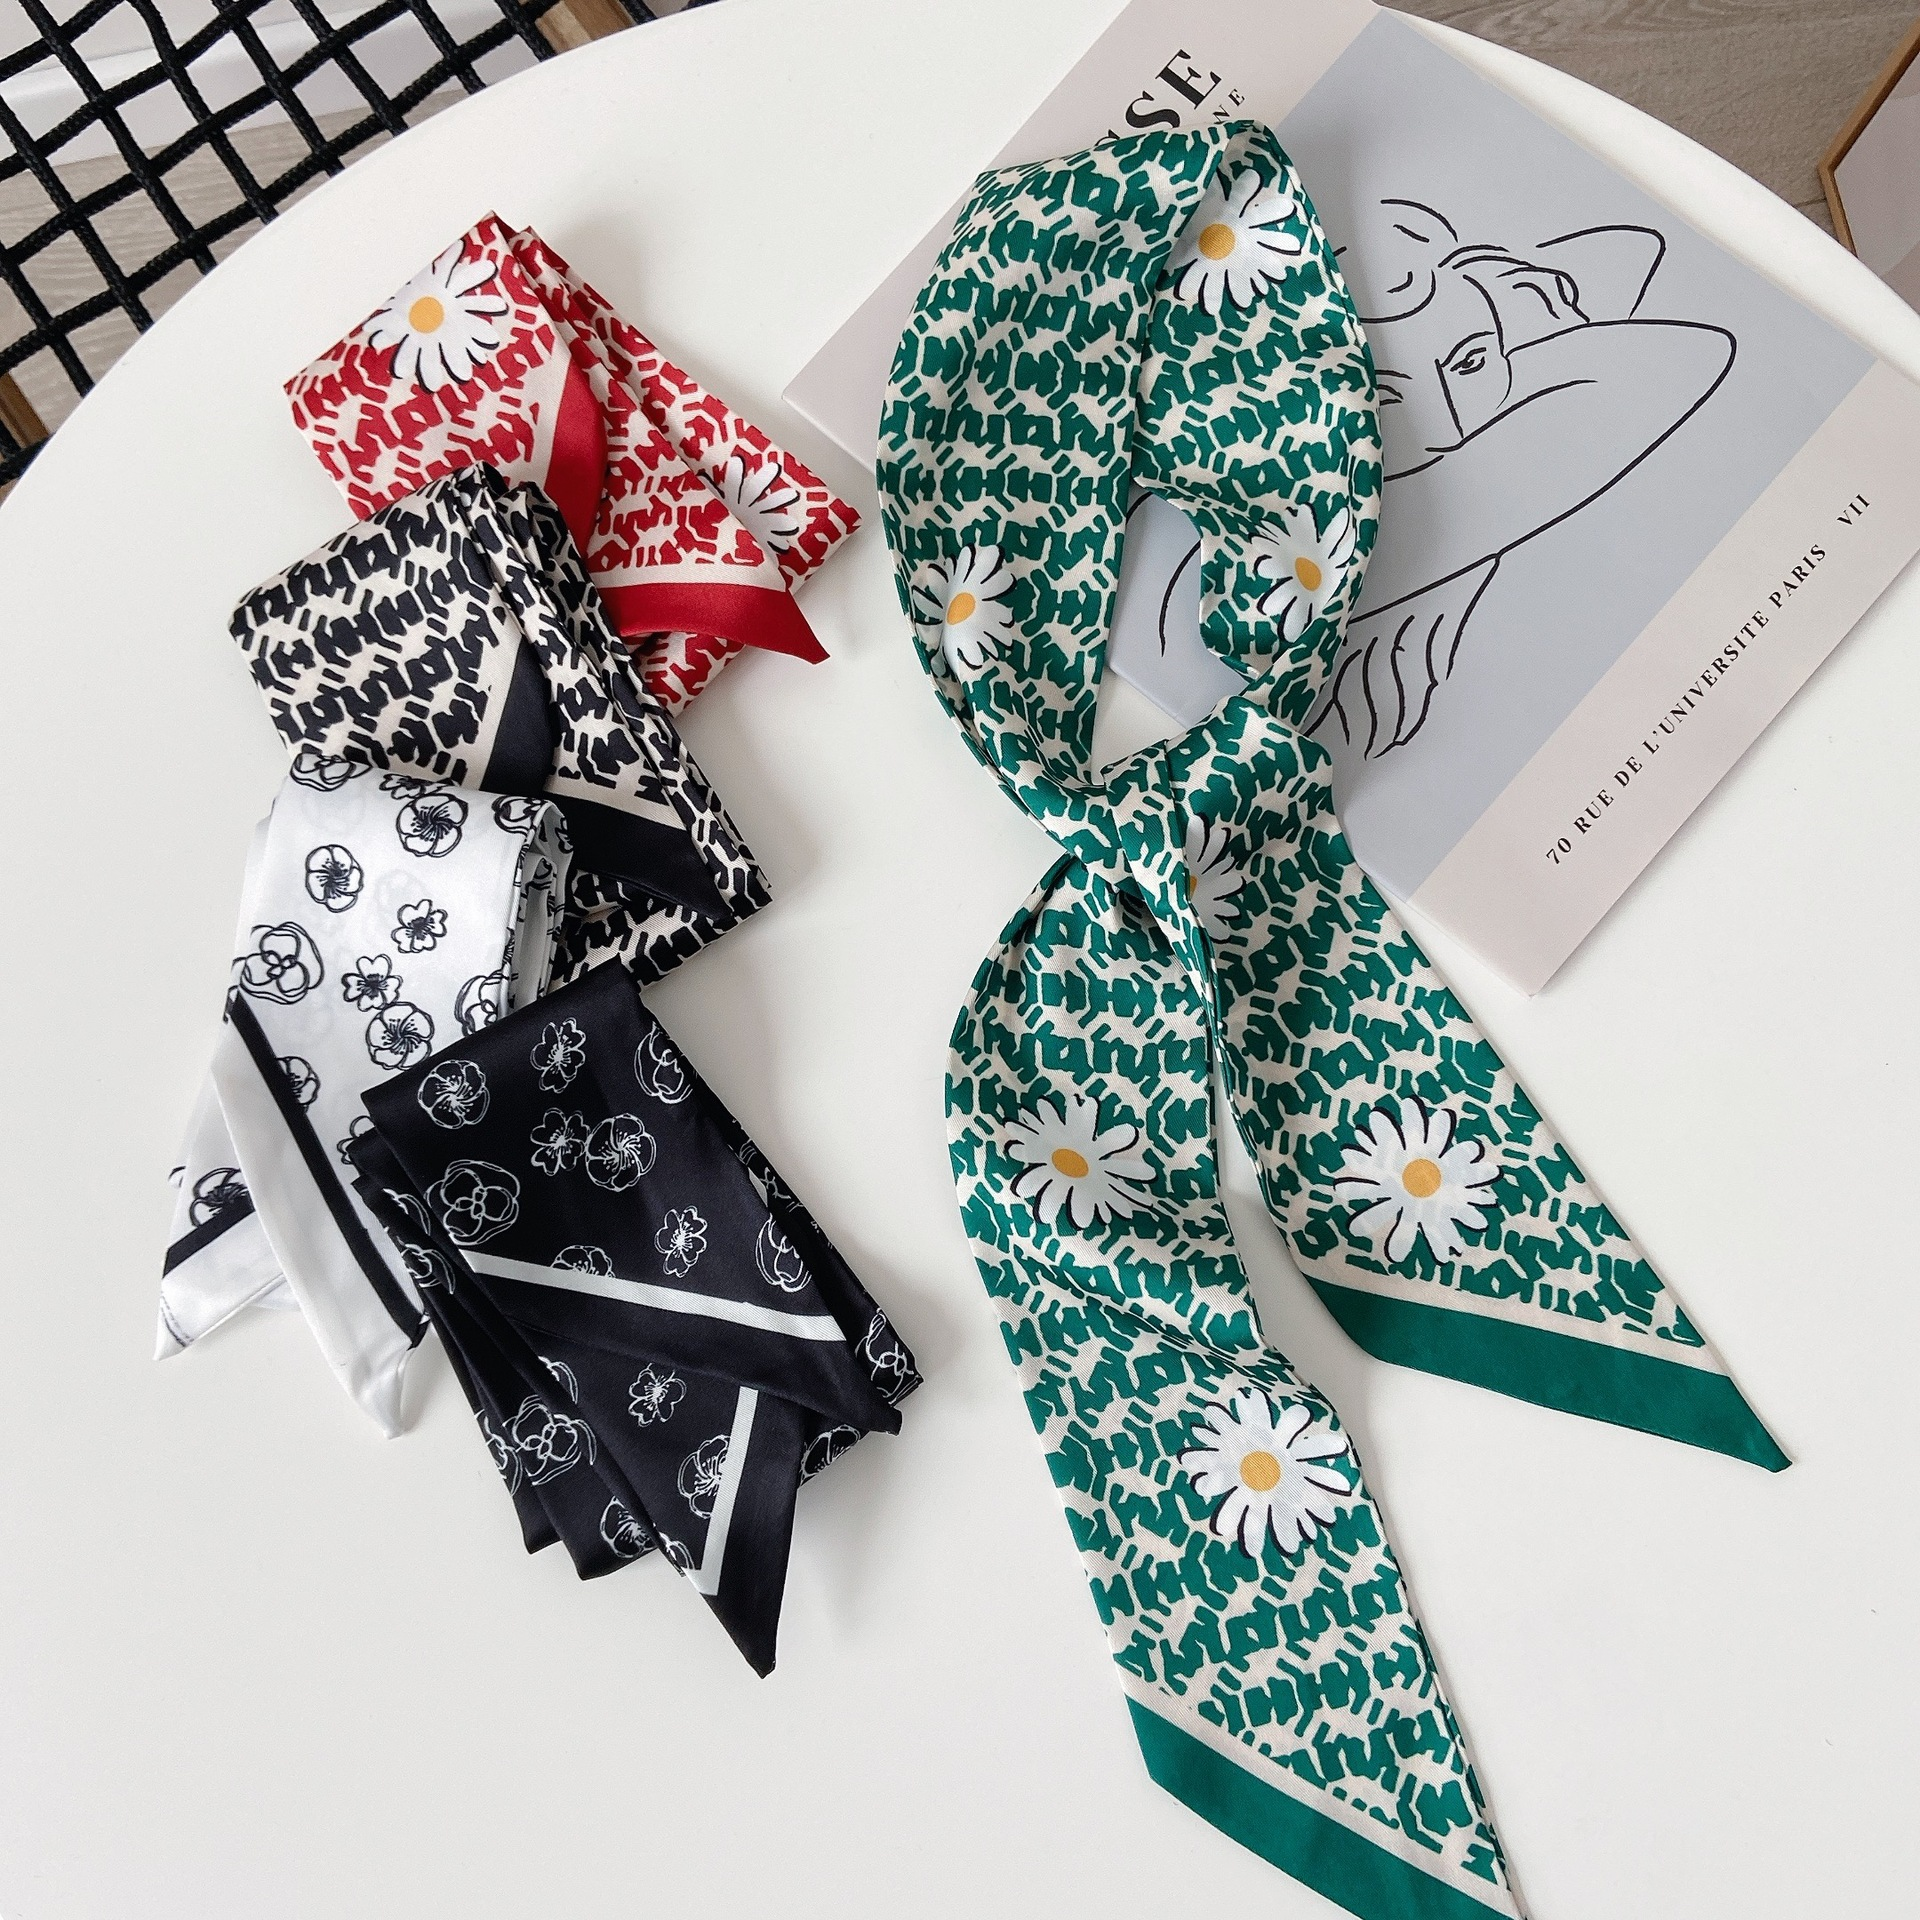 Artistic Thin and Long Scarf for Fabulous Retro Hairstyles